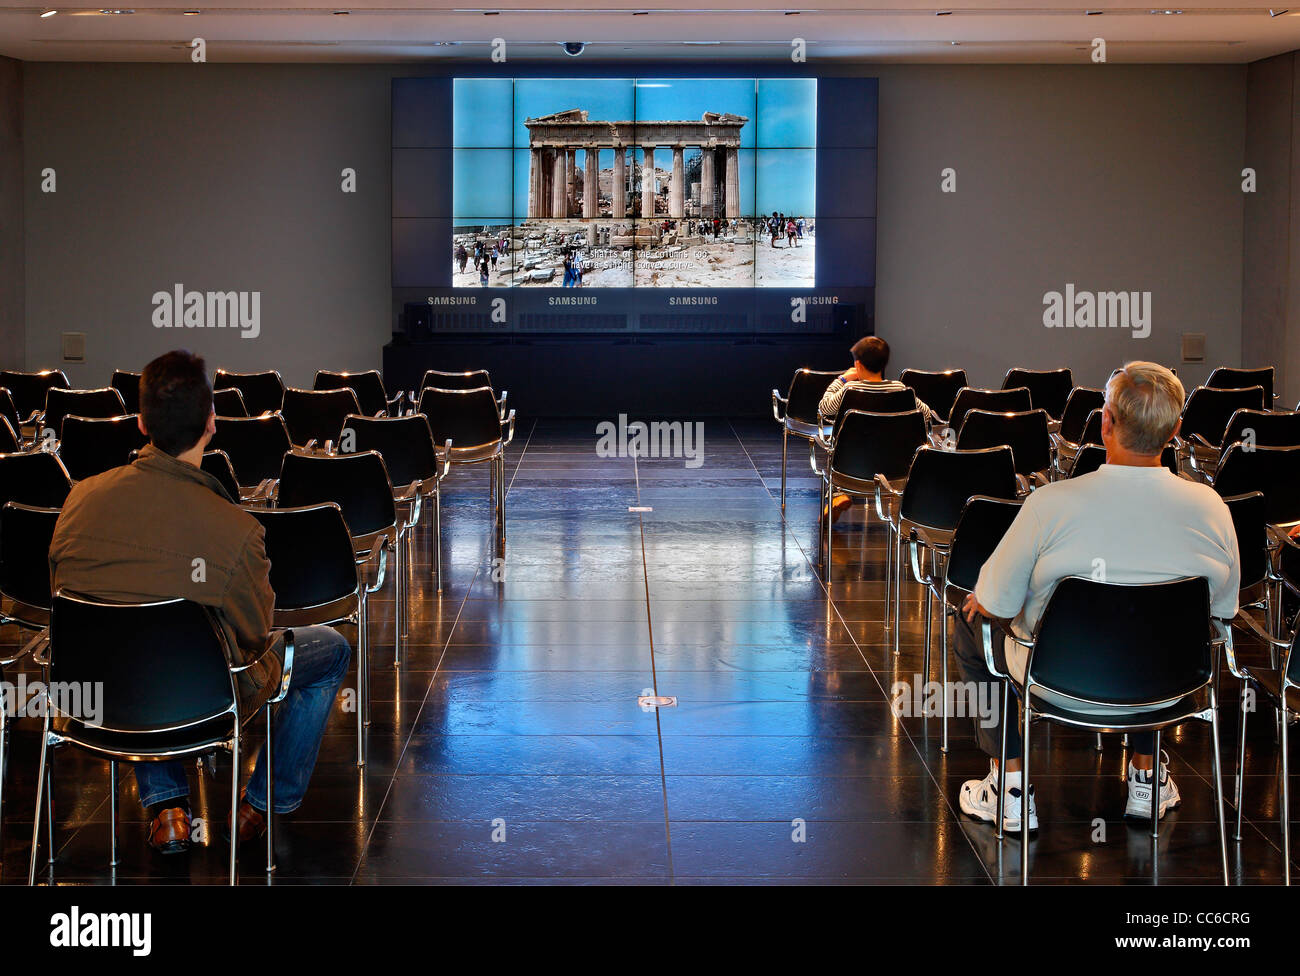 Projection of educational video about Parthenon in the Multimedia center of the Acropolis museum, Athens, Greece - Stock Image